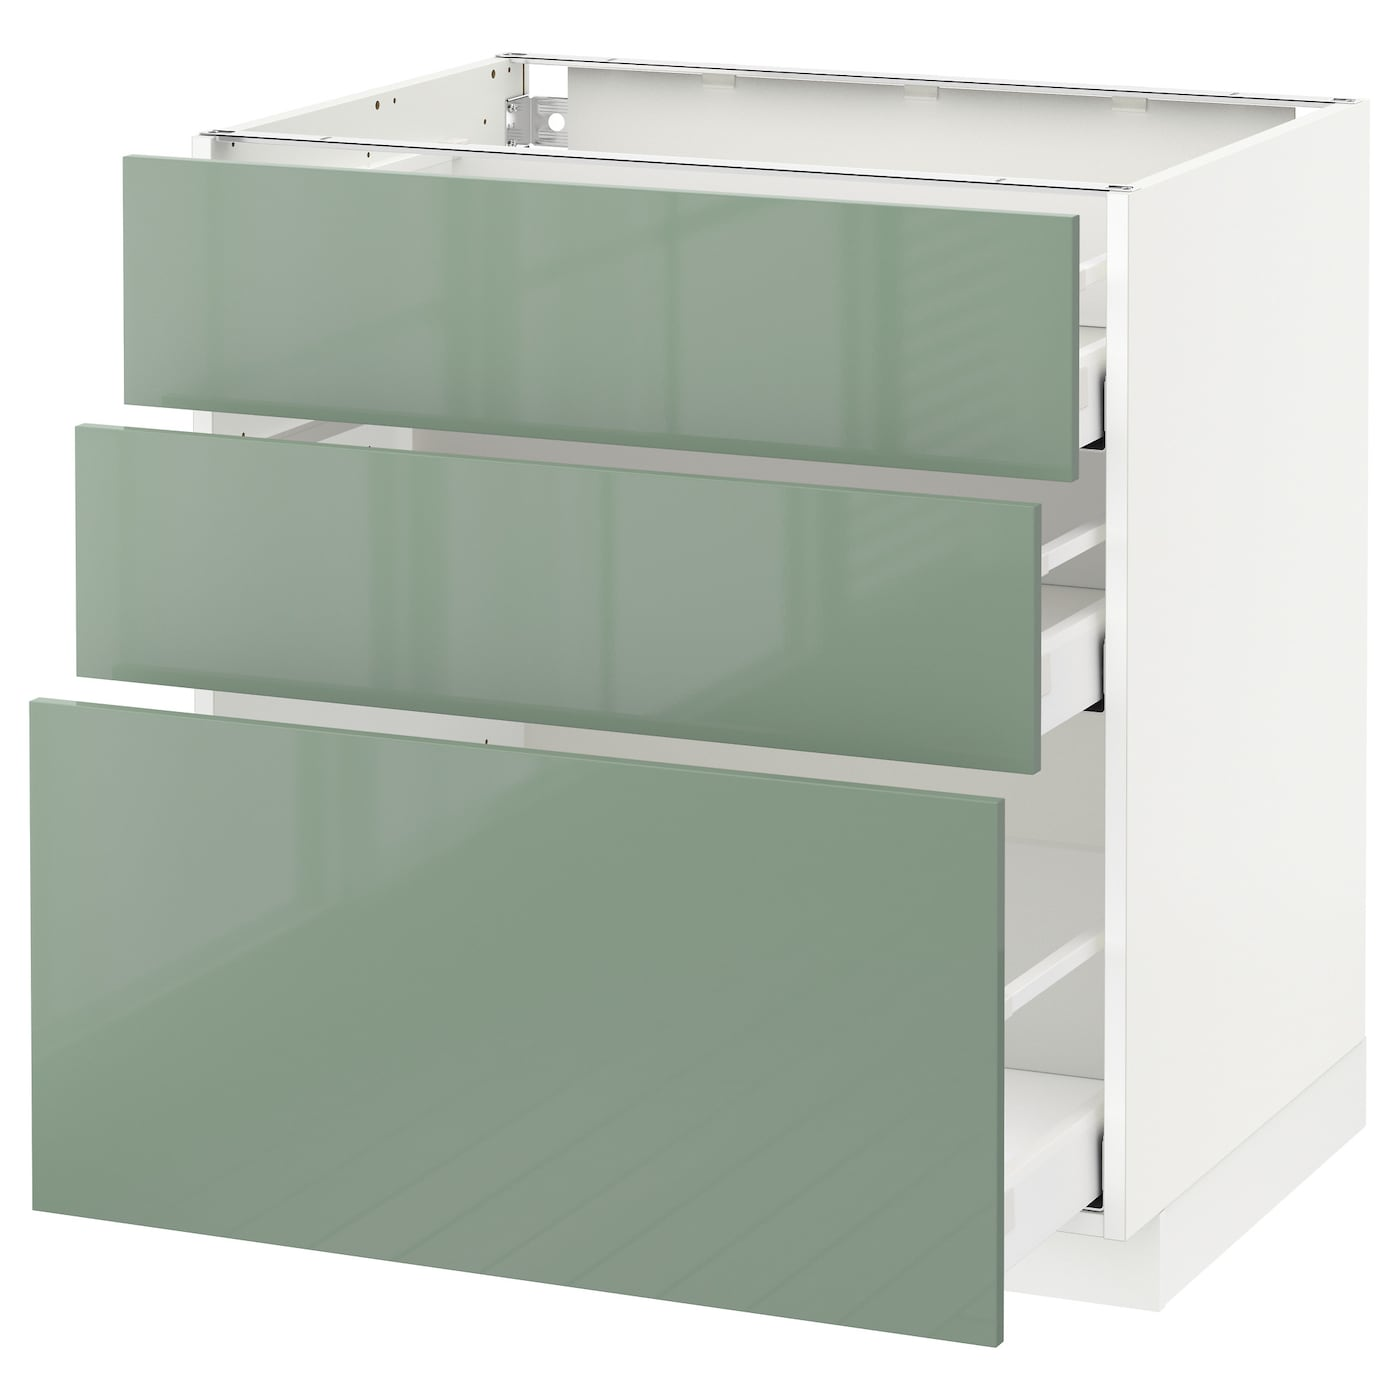 Metod maximera base cabinet with 3 drawers white kallarp Kitchen cabinets light green